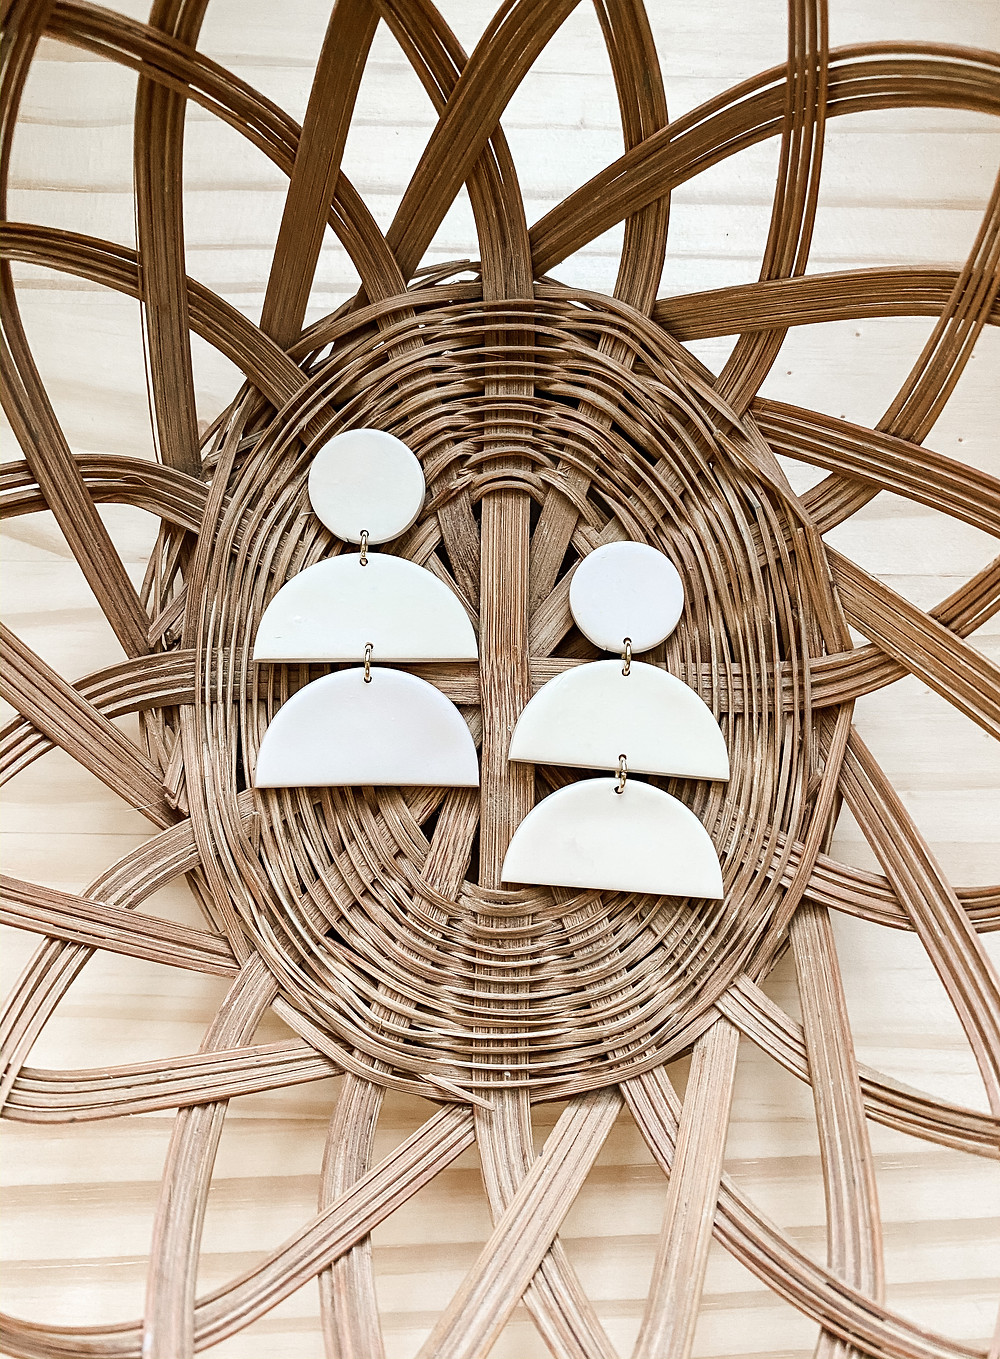 A pair of three-tiered earrings by Honeymoon Clay Co rests in a whicker basket in Winter Garden, FL